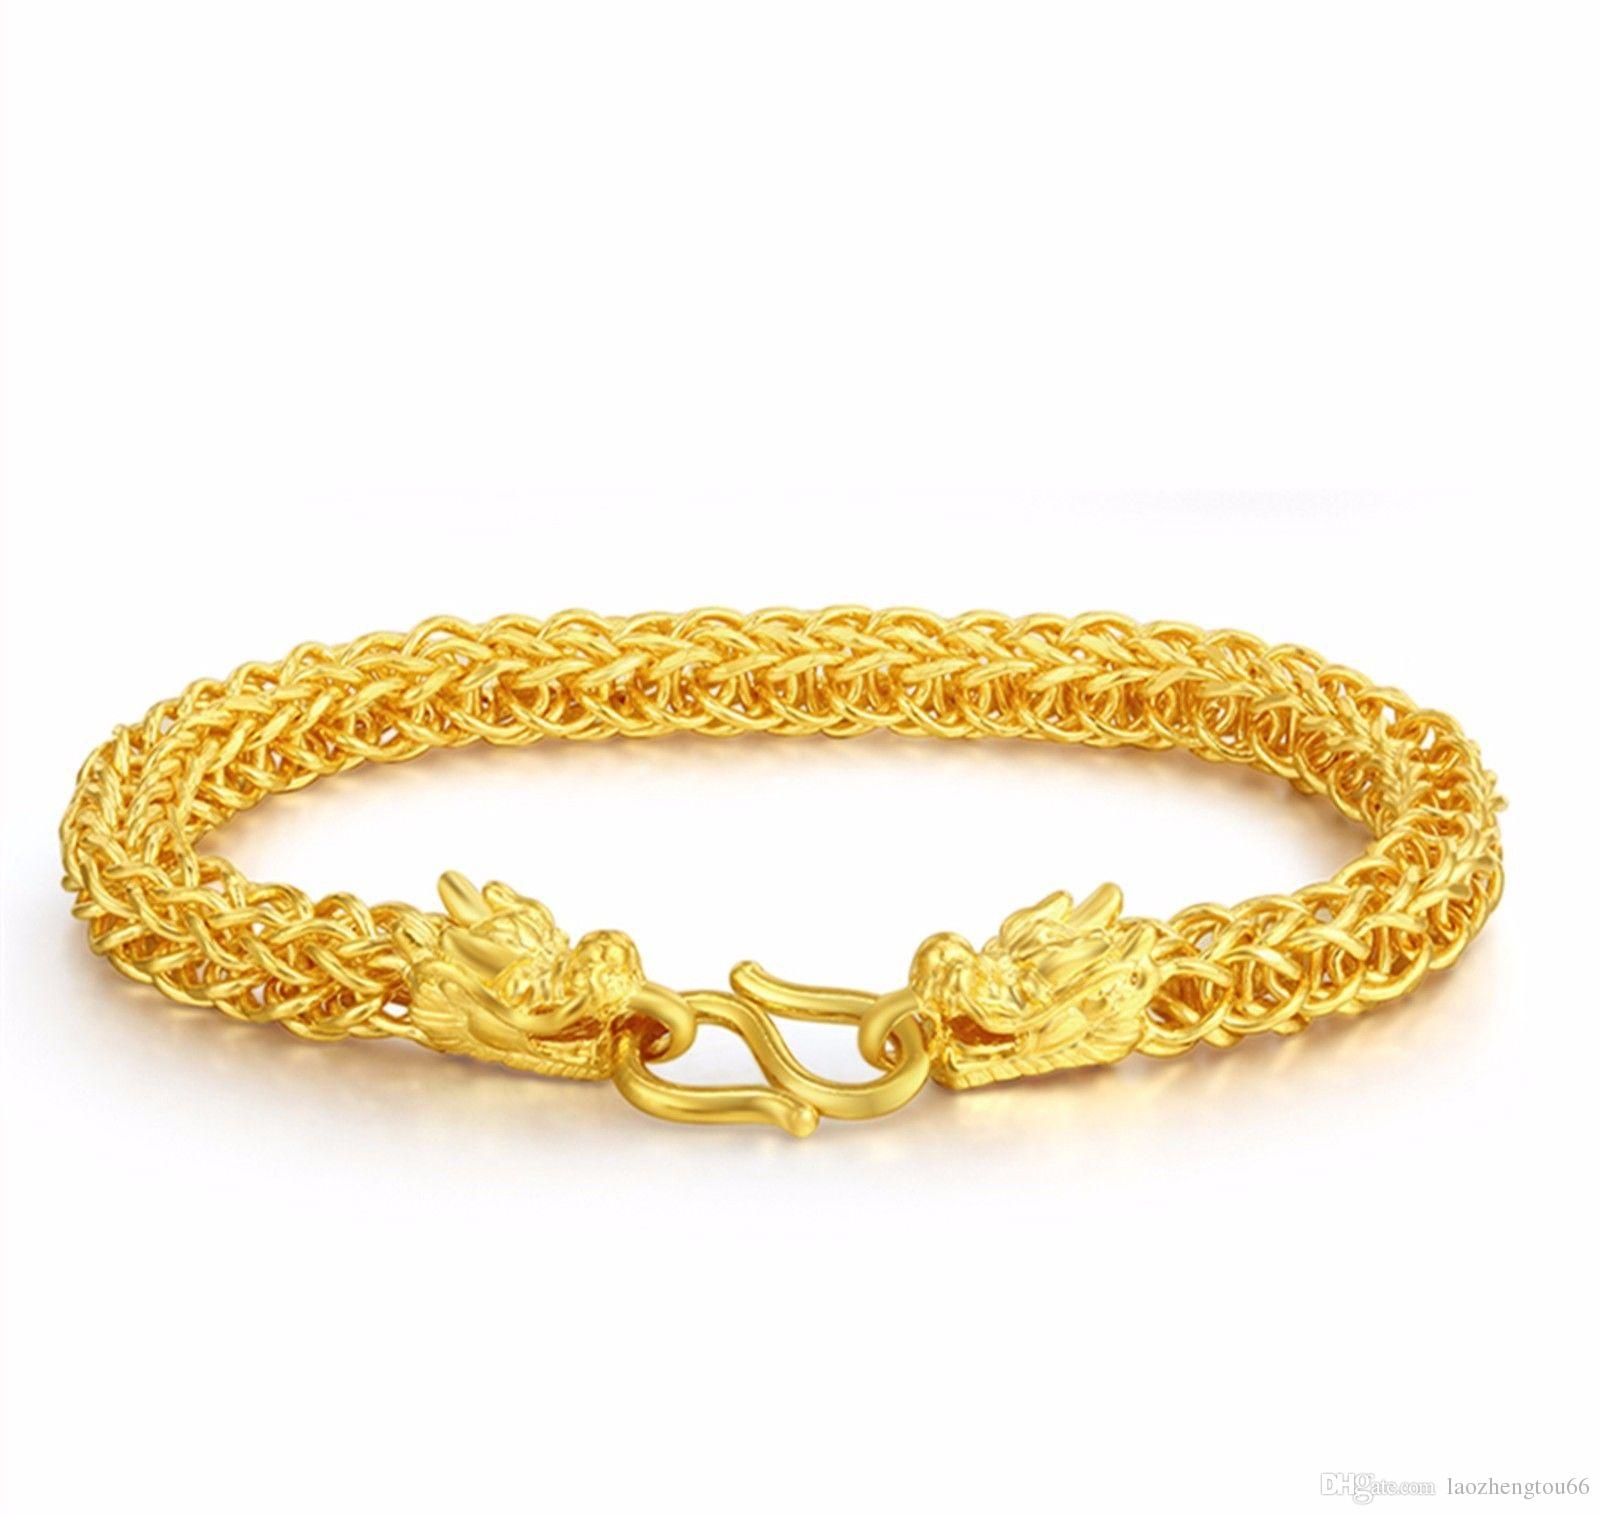 monarch bracelets oro resized bead macrame shop jewellery gold collection bracelet